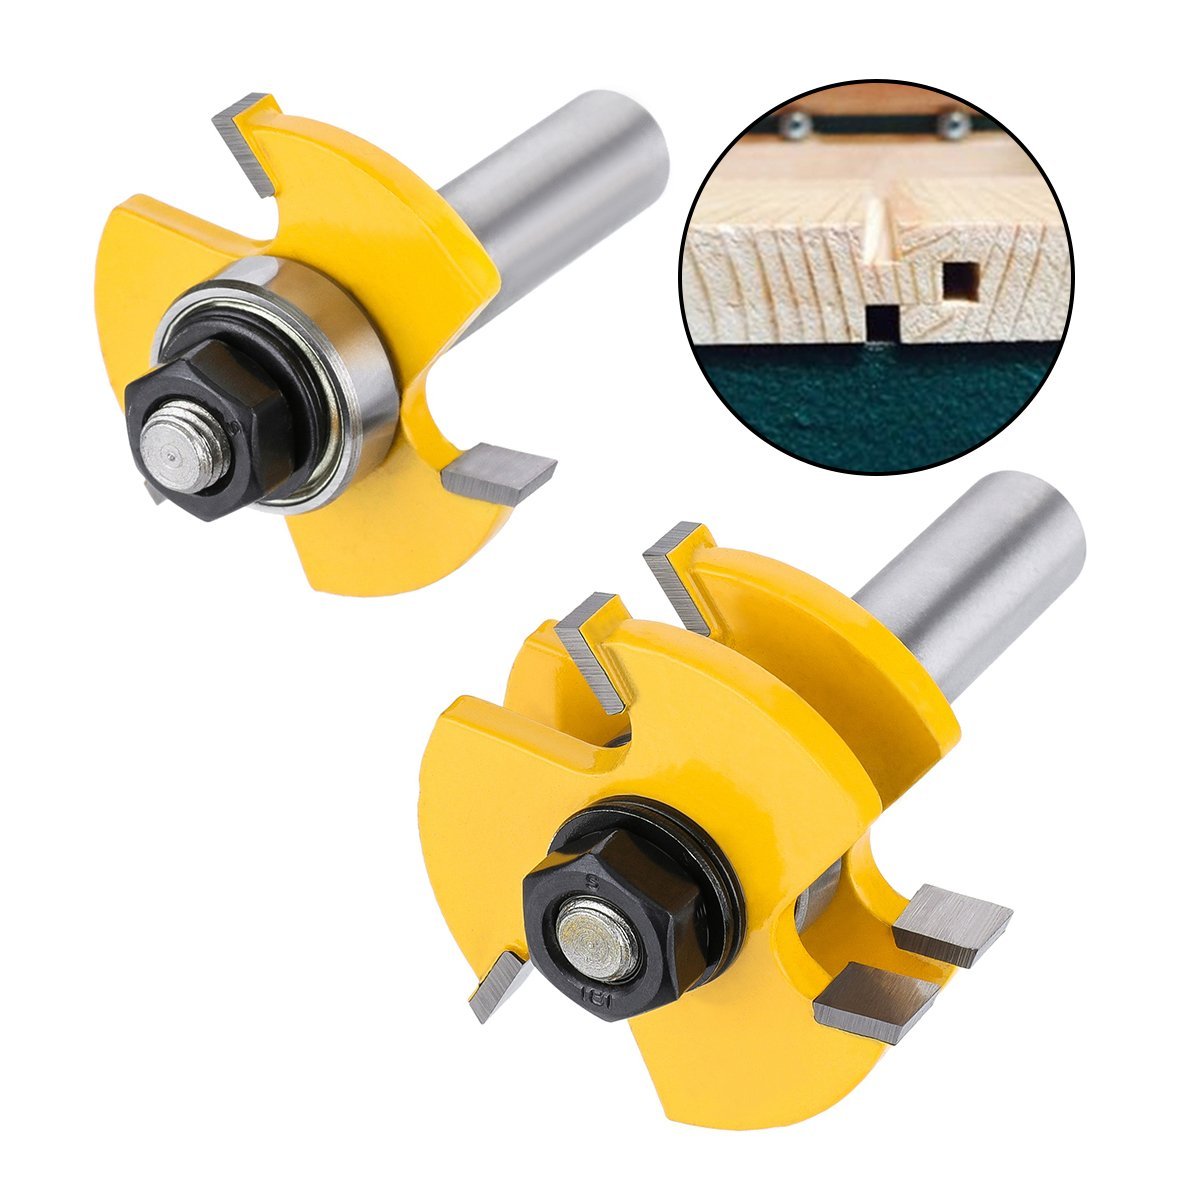 Tongue and Groove Set,DRILLPRO 2PCS Router Bit Set 1/2-Inch Shank T Shape Wood Milling Cutter Woodworking Tool For Doors, Tables, Shelves, Walls, DIY Woodwork by DRILLPRO (Image #3)